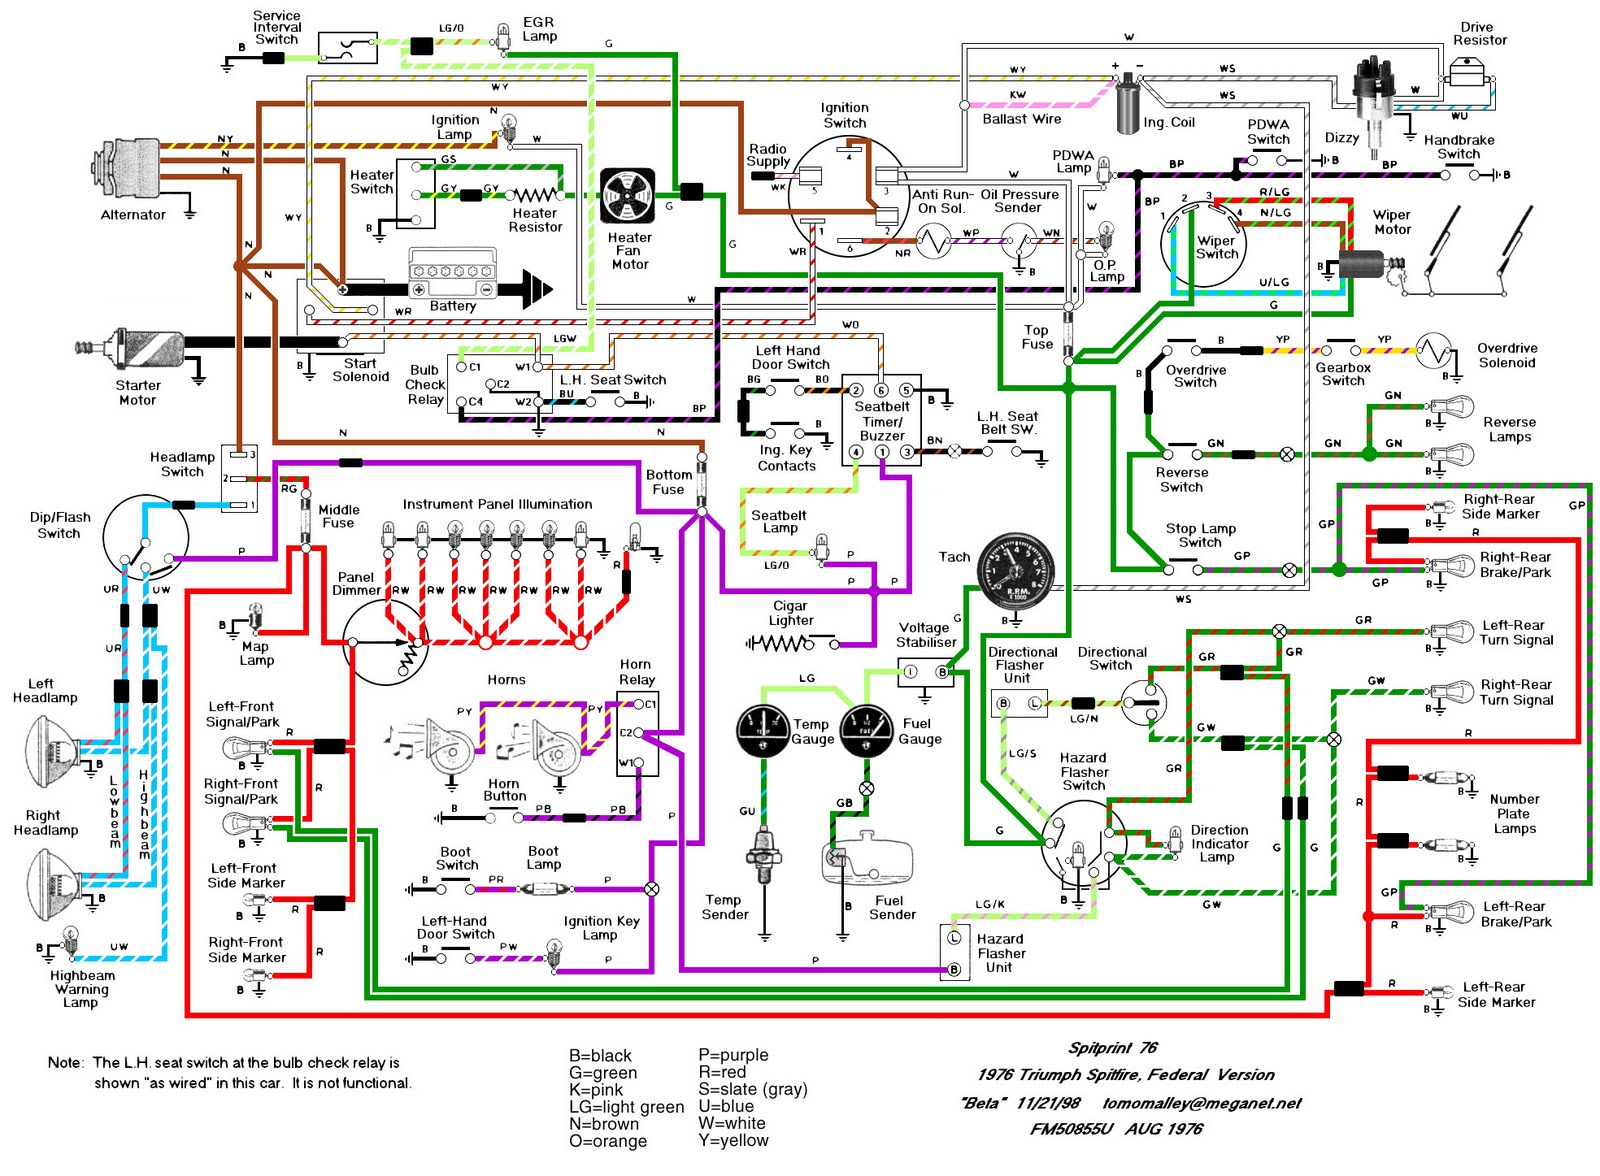 medium resolution of r53 mini cooper fuse diagram wiring diagram used 2004 mini cooper wiring diagram